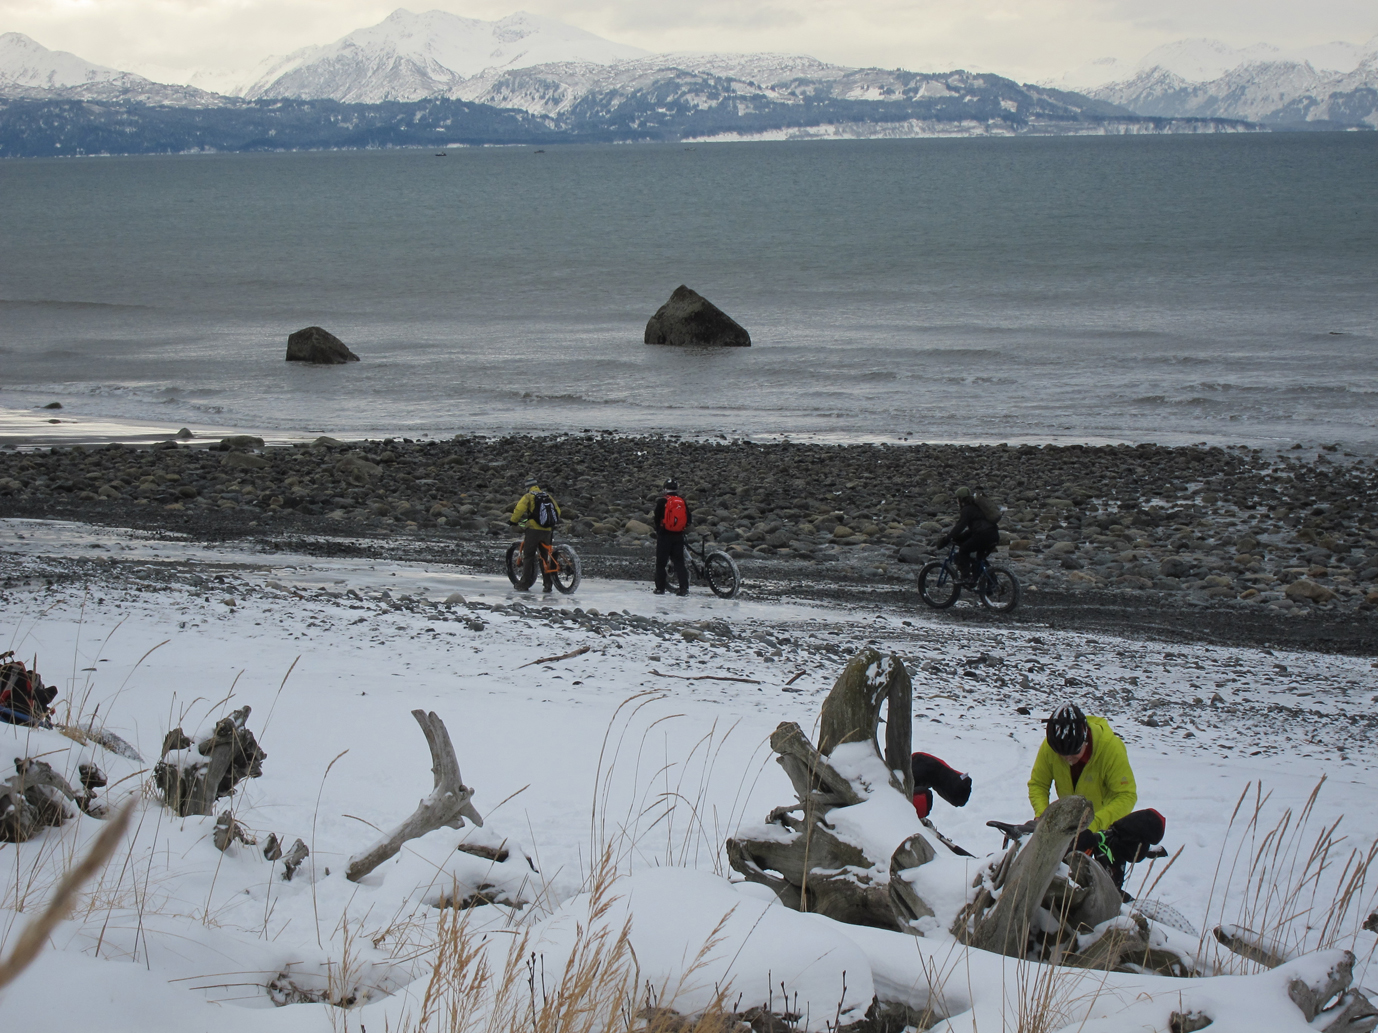 Participants in last weekend's Big Fat Bike Fest enjoy a ride and camaraderie at Bishop's Beach. Funds raised from the festival will go into an educational bike safety campaign.-Photo by Aryn Young